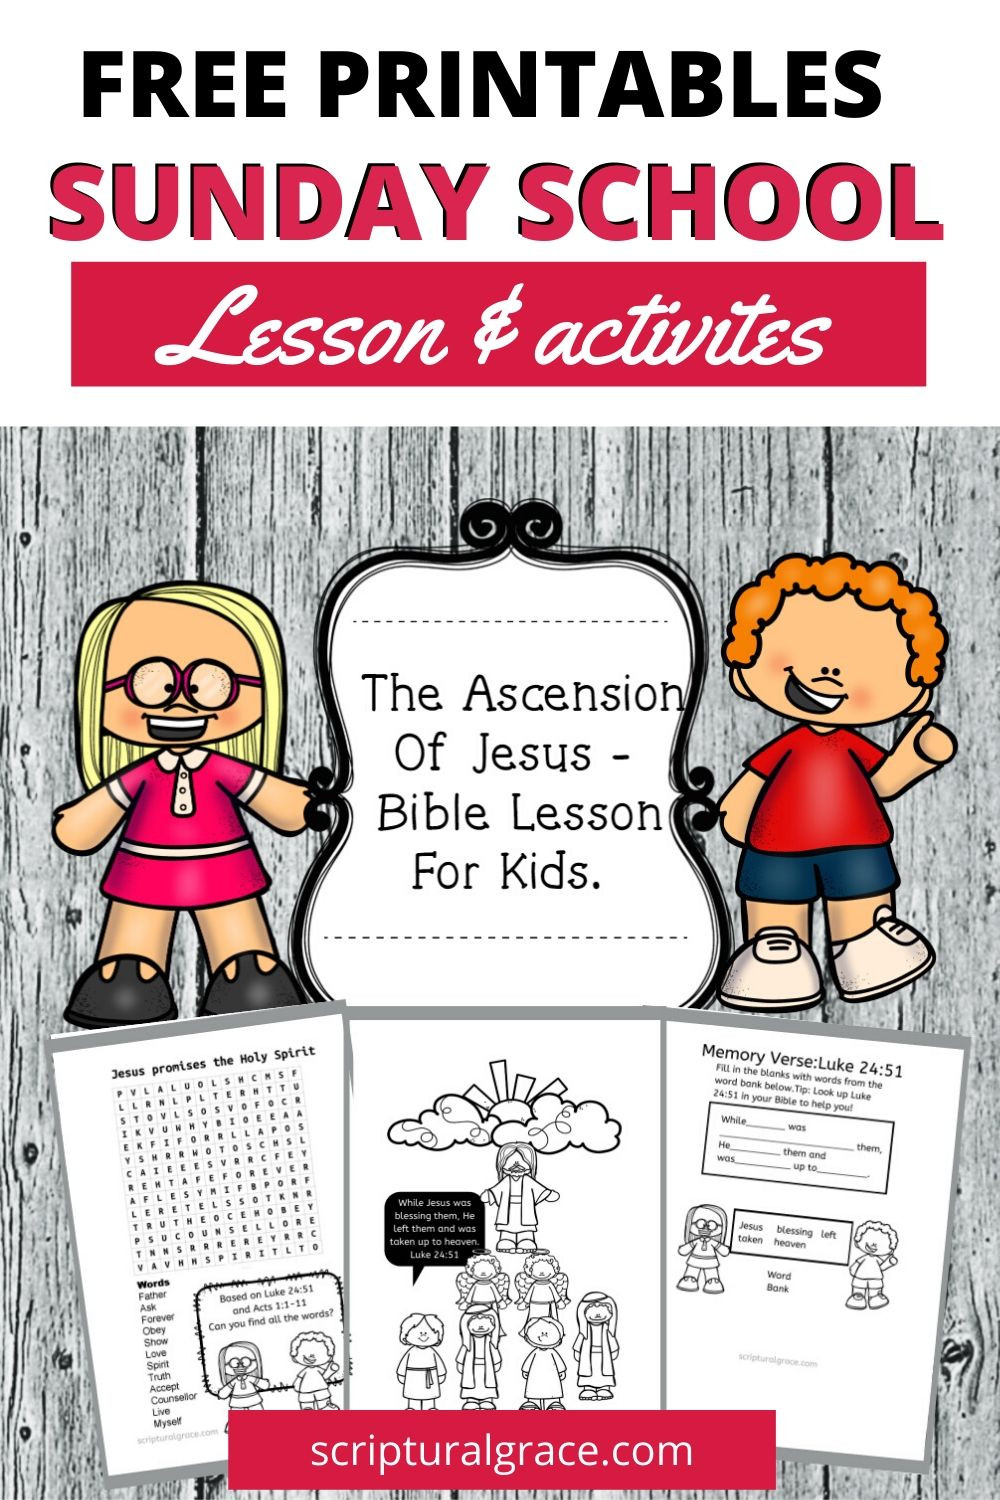 Free Bible lesson for kids the Ascension Of Jesus with free printable